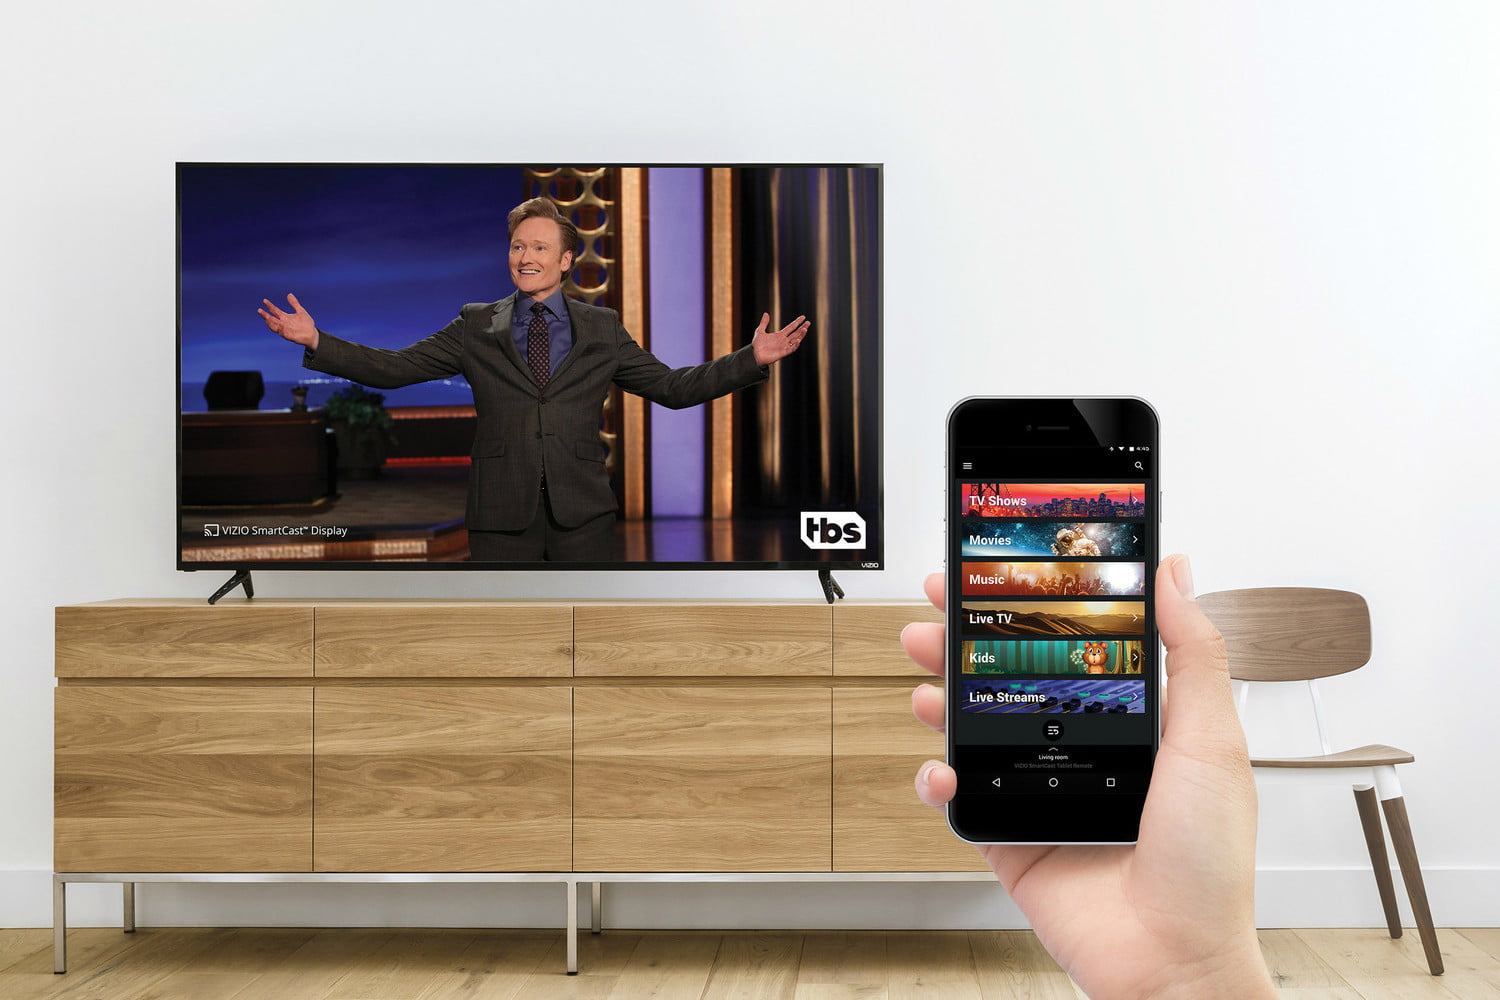 Vizio SmartCast Mobile Adds Turner Networks to its List of